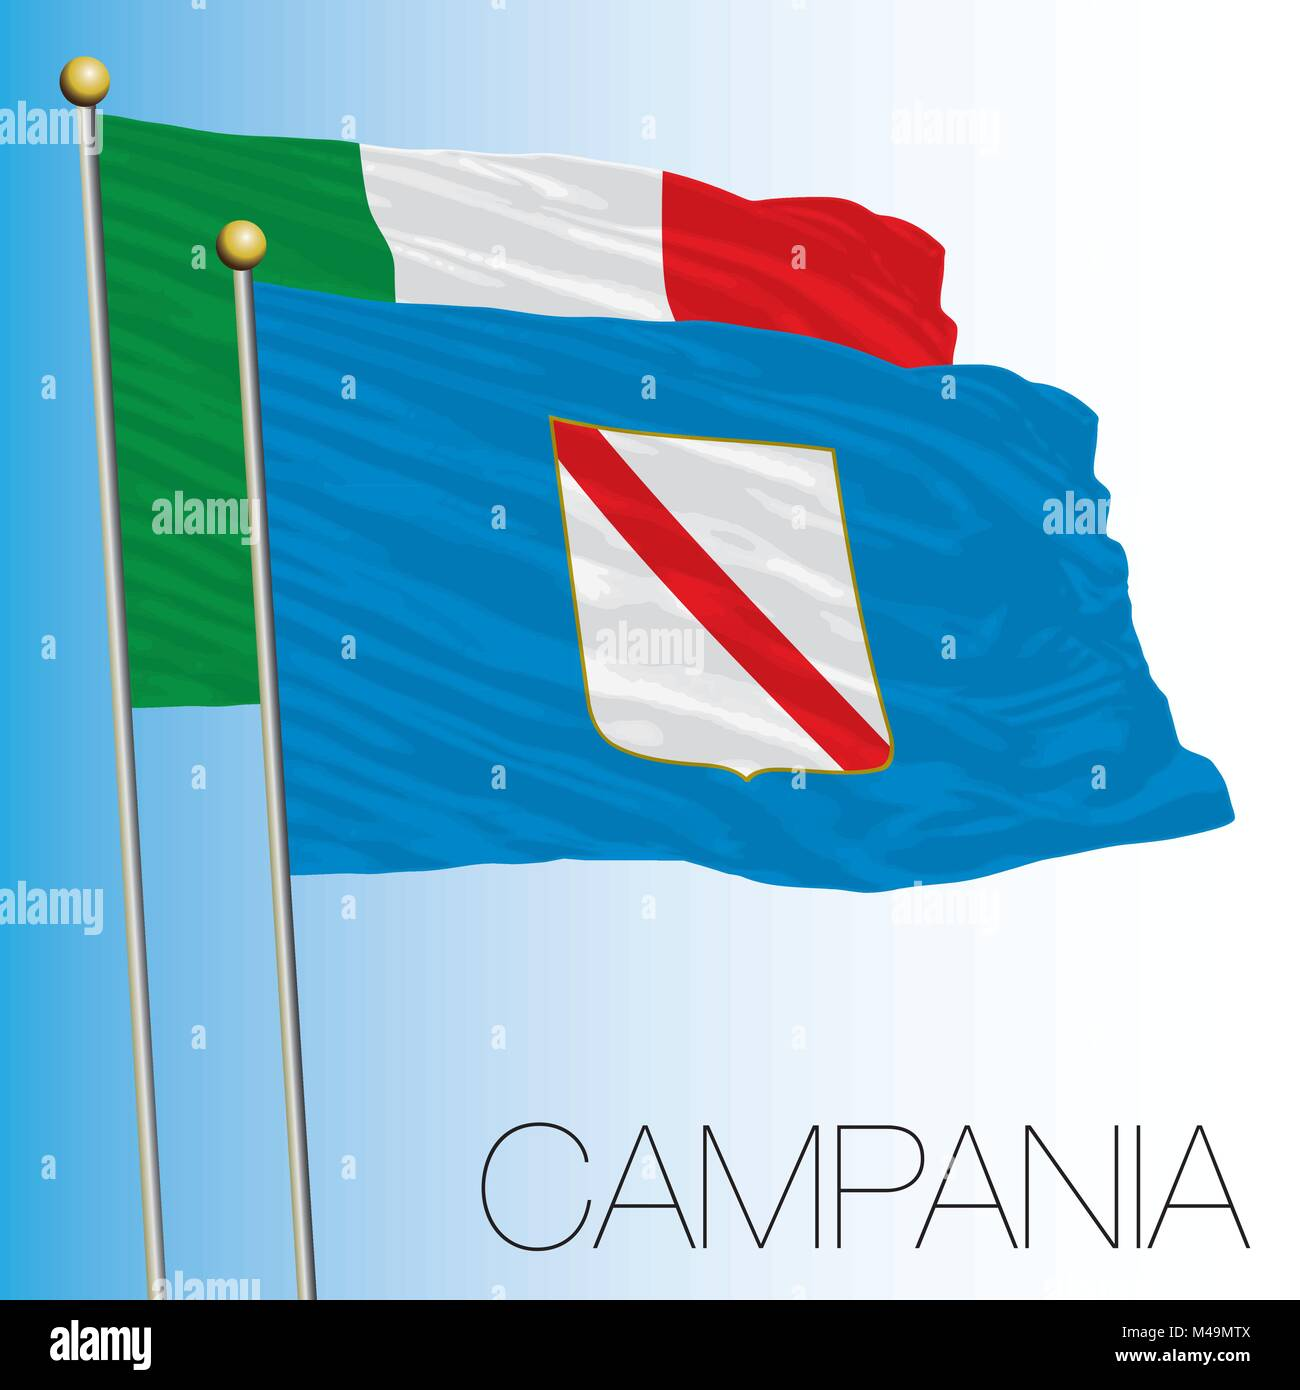 Campania regional flag, Italian Republic, Italy, European Union - Stock Vector